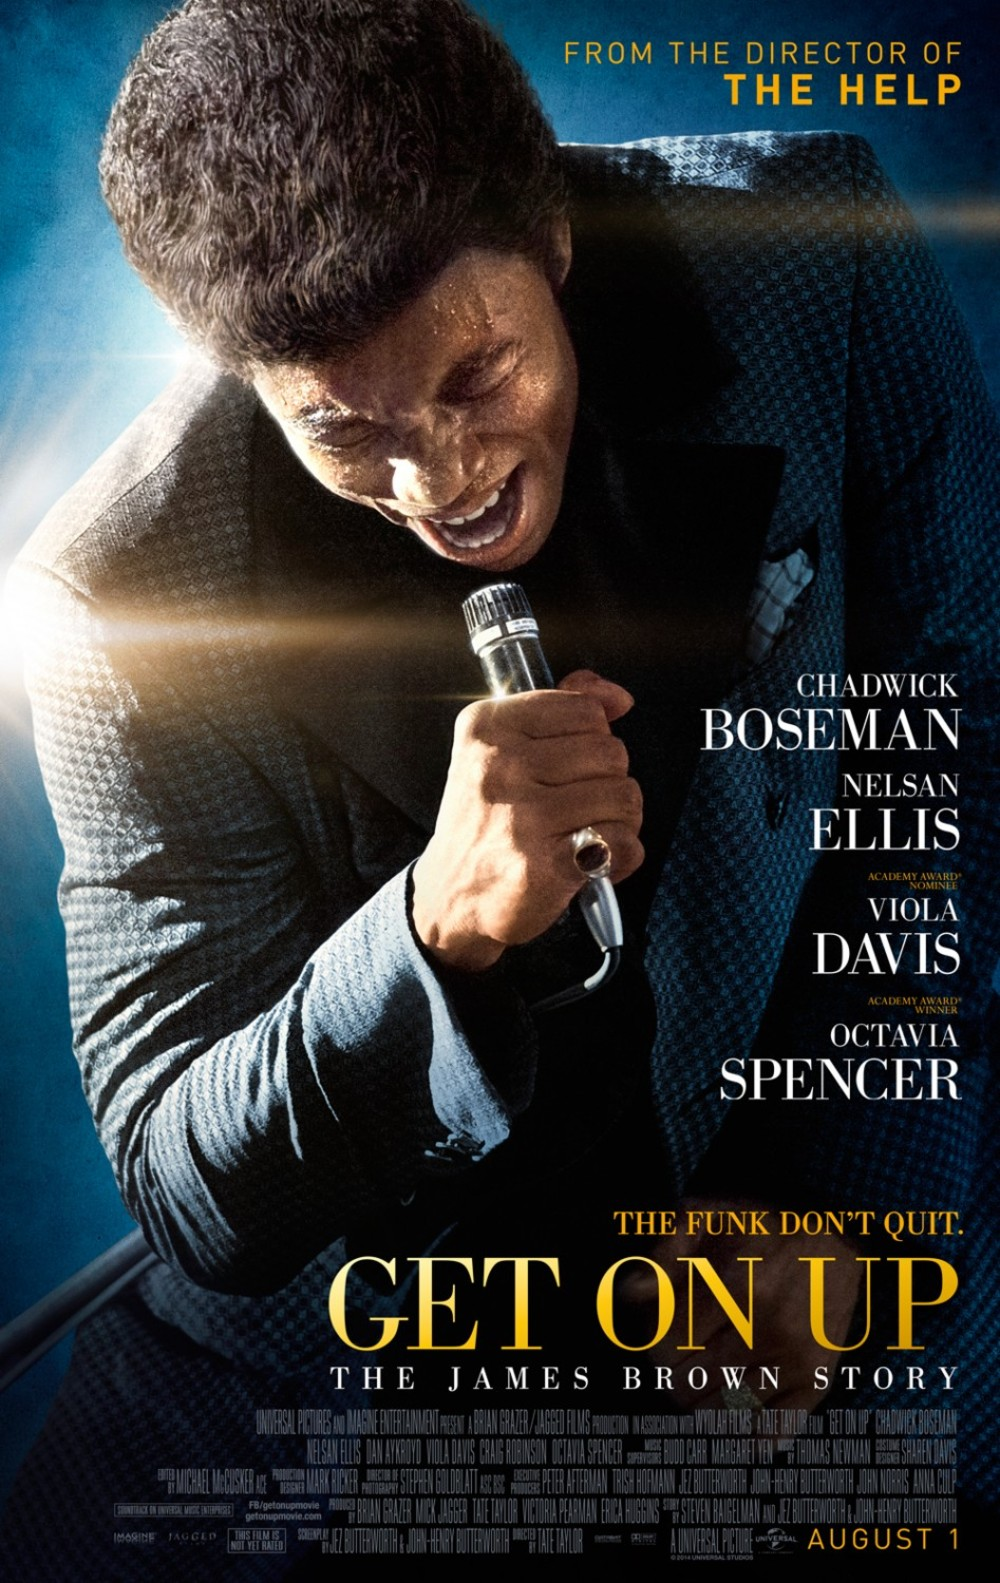 Silver Sessions | Get On Up Trailer | Silver Sessions